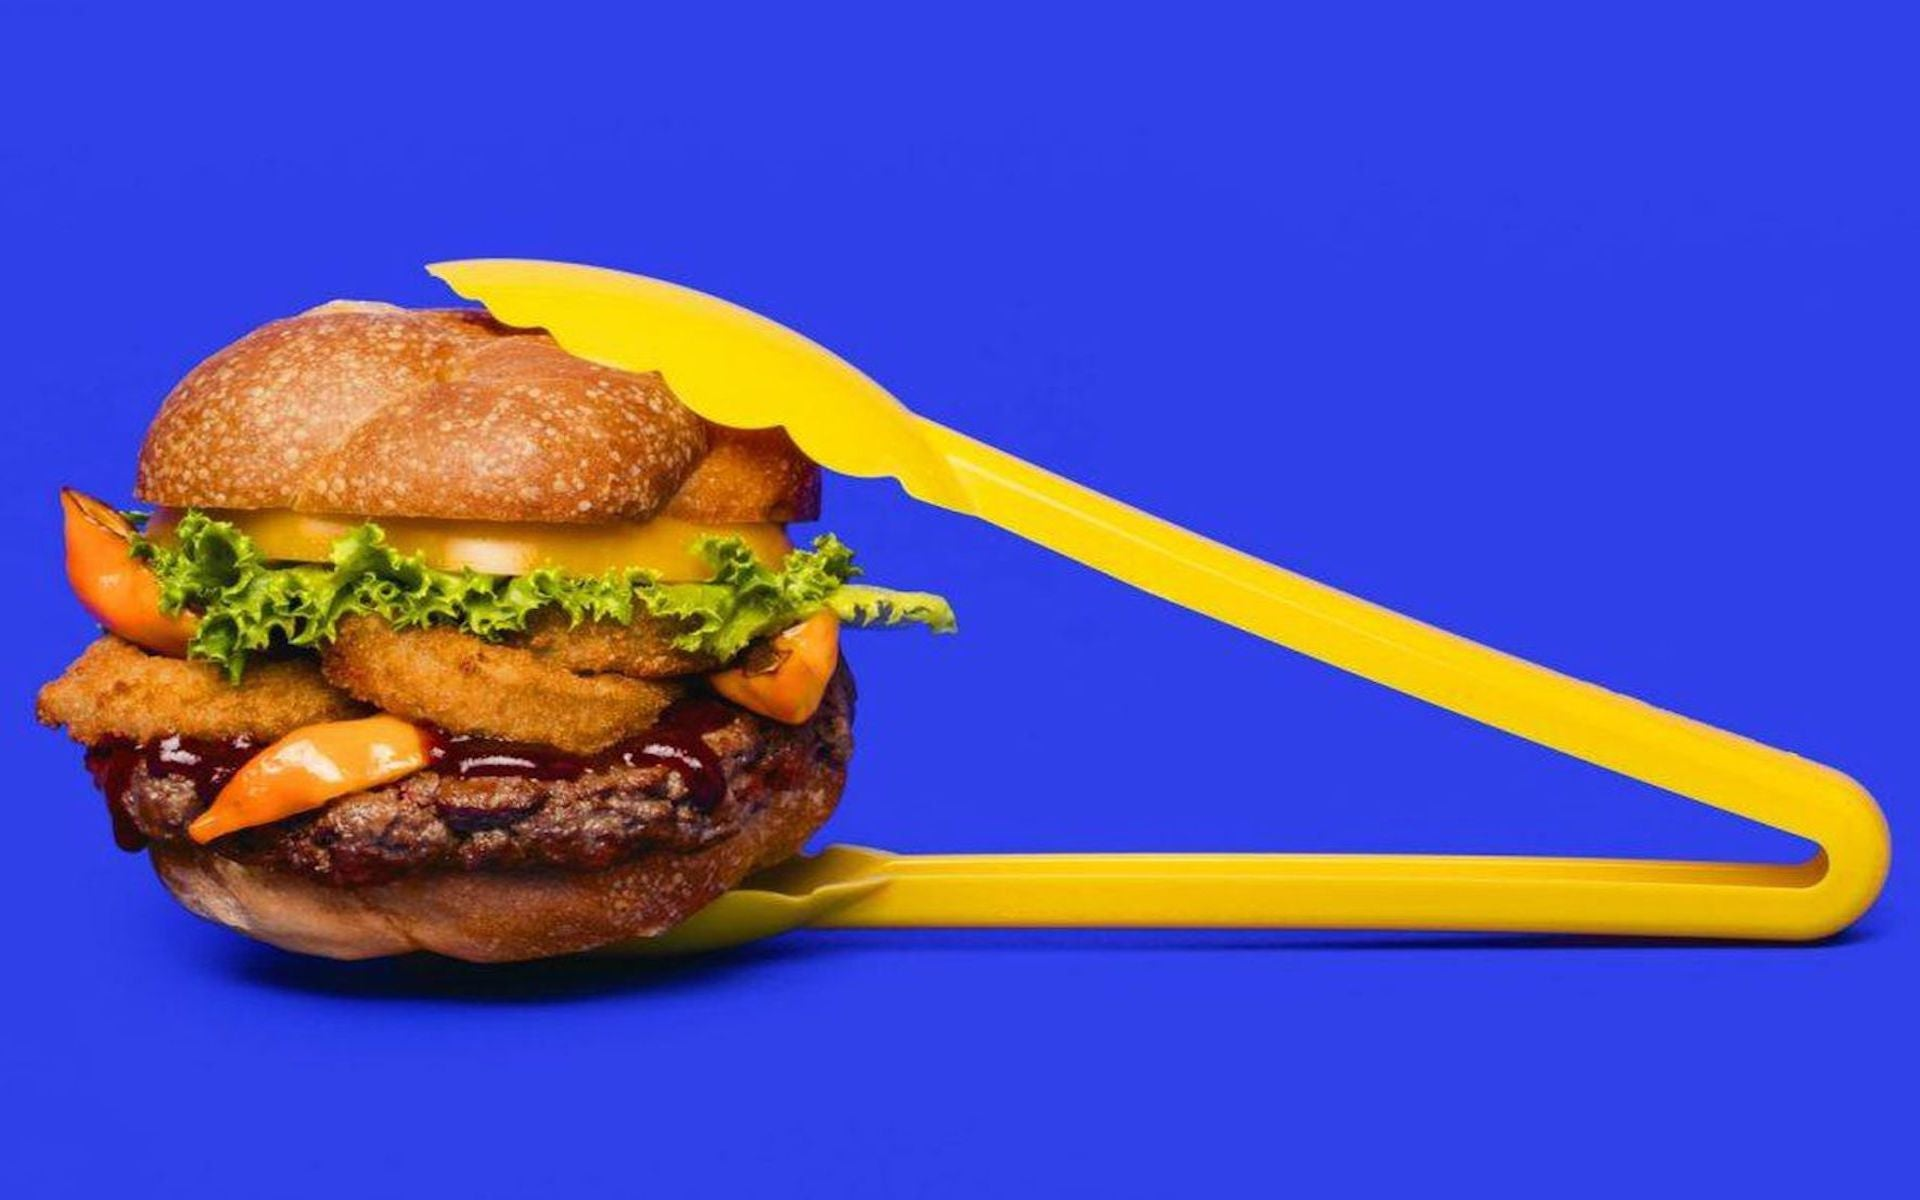 IMPOSSIBLE FOODS: ETSİZ BURGER OLUR MU?